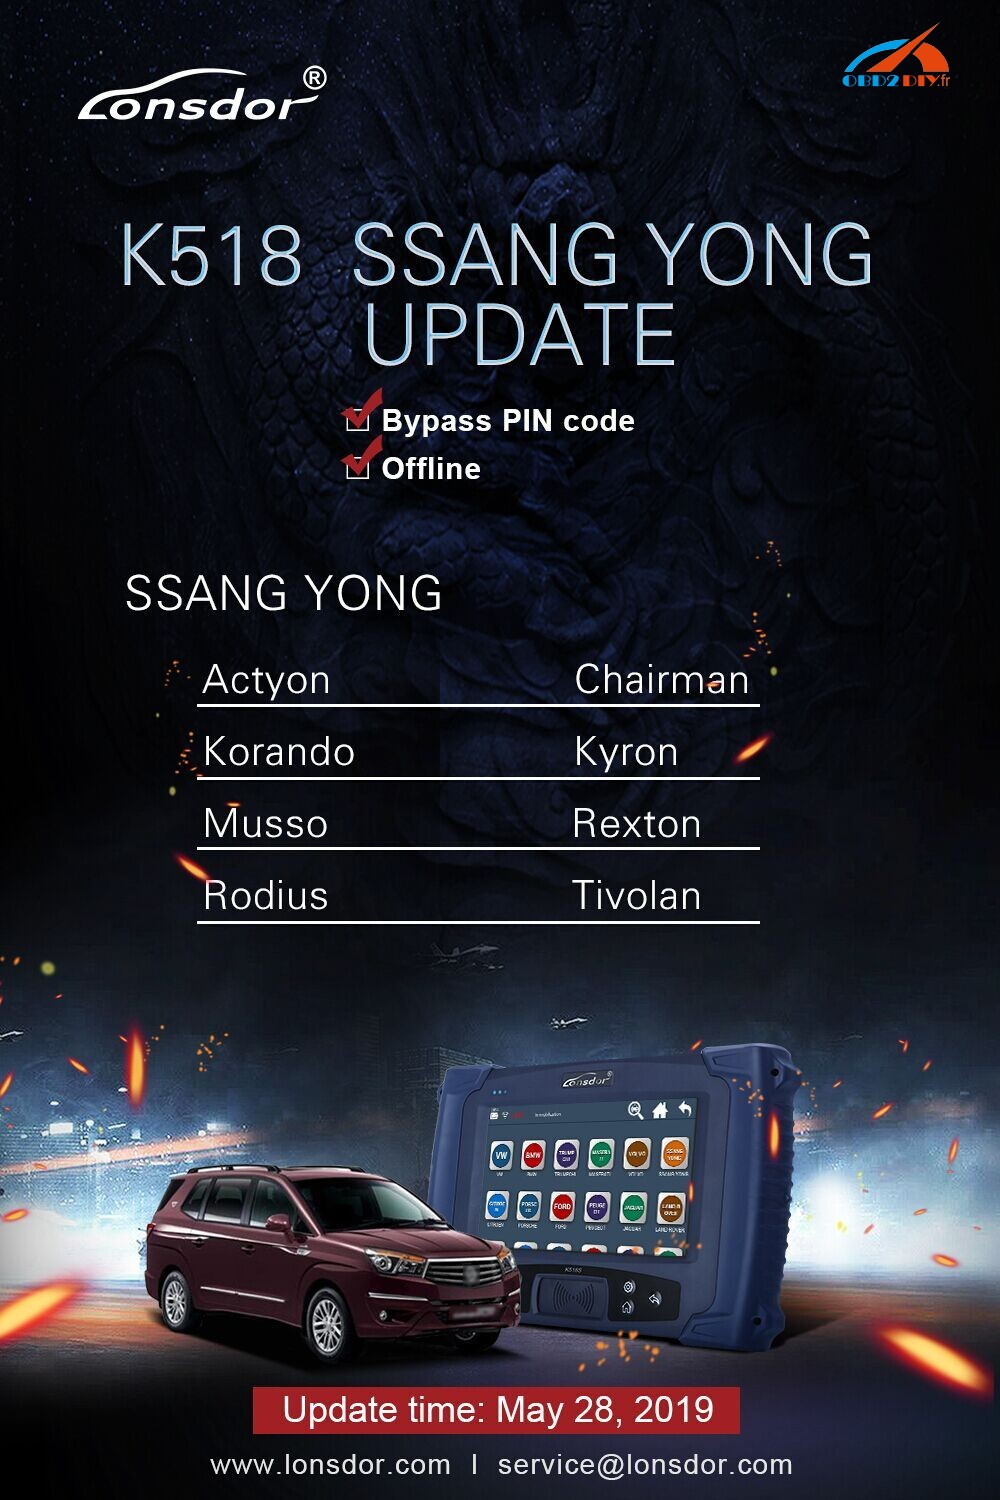 Lonsdor-K518s-K518ise-update-for-SSANG-YONG